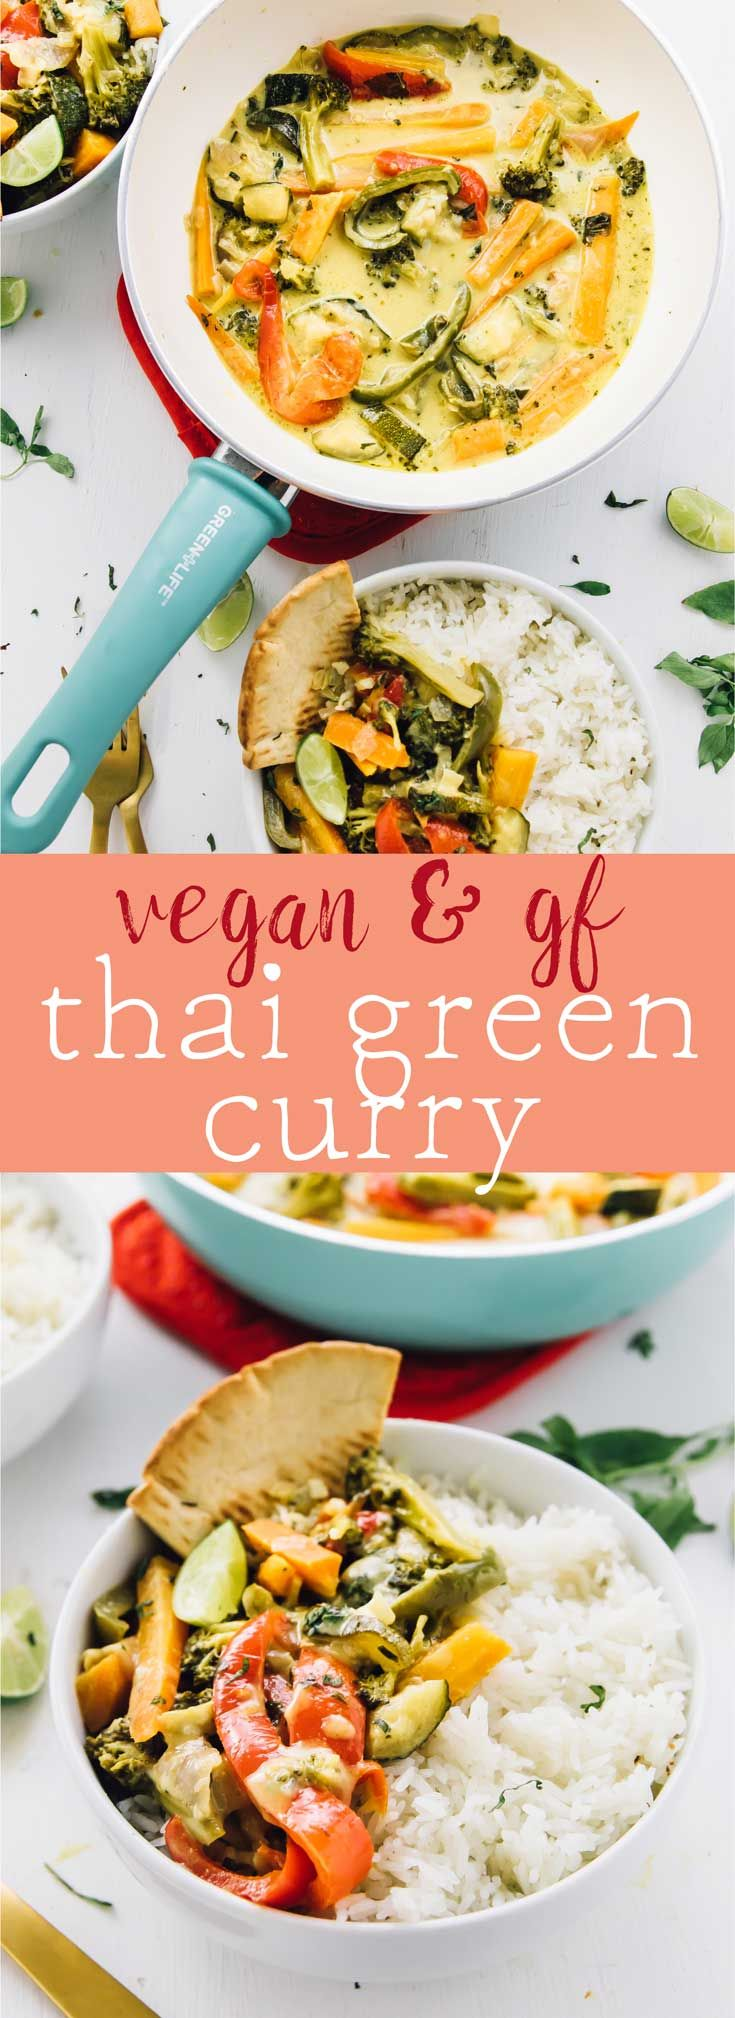 This Thai Green Curry takes only 30 minutes! All it takes is one pot, it's loaded with rich flavours, and is bound to be a crowd pleaser! via http://jessicainthekitchen.com